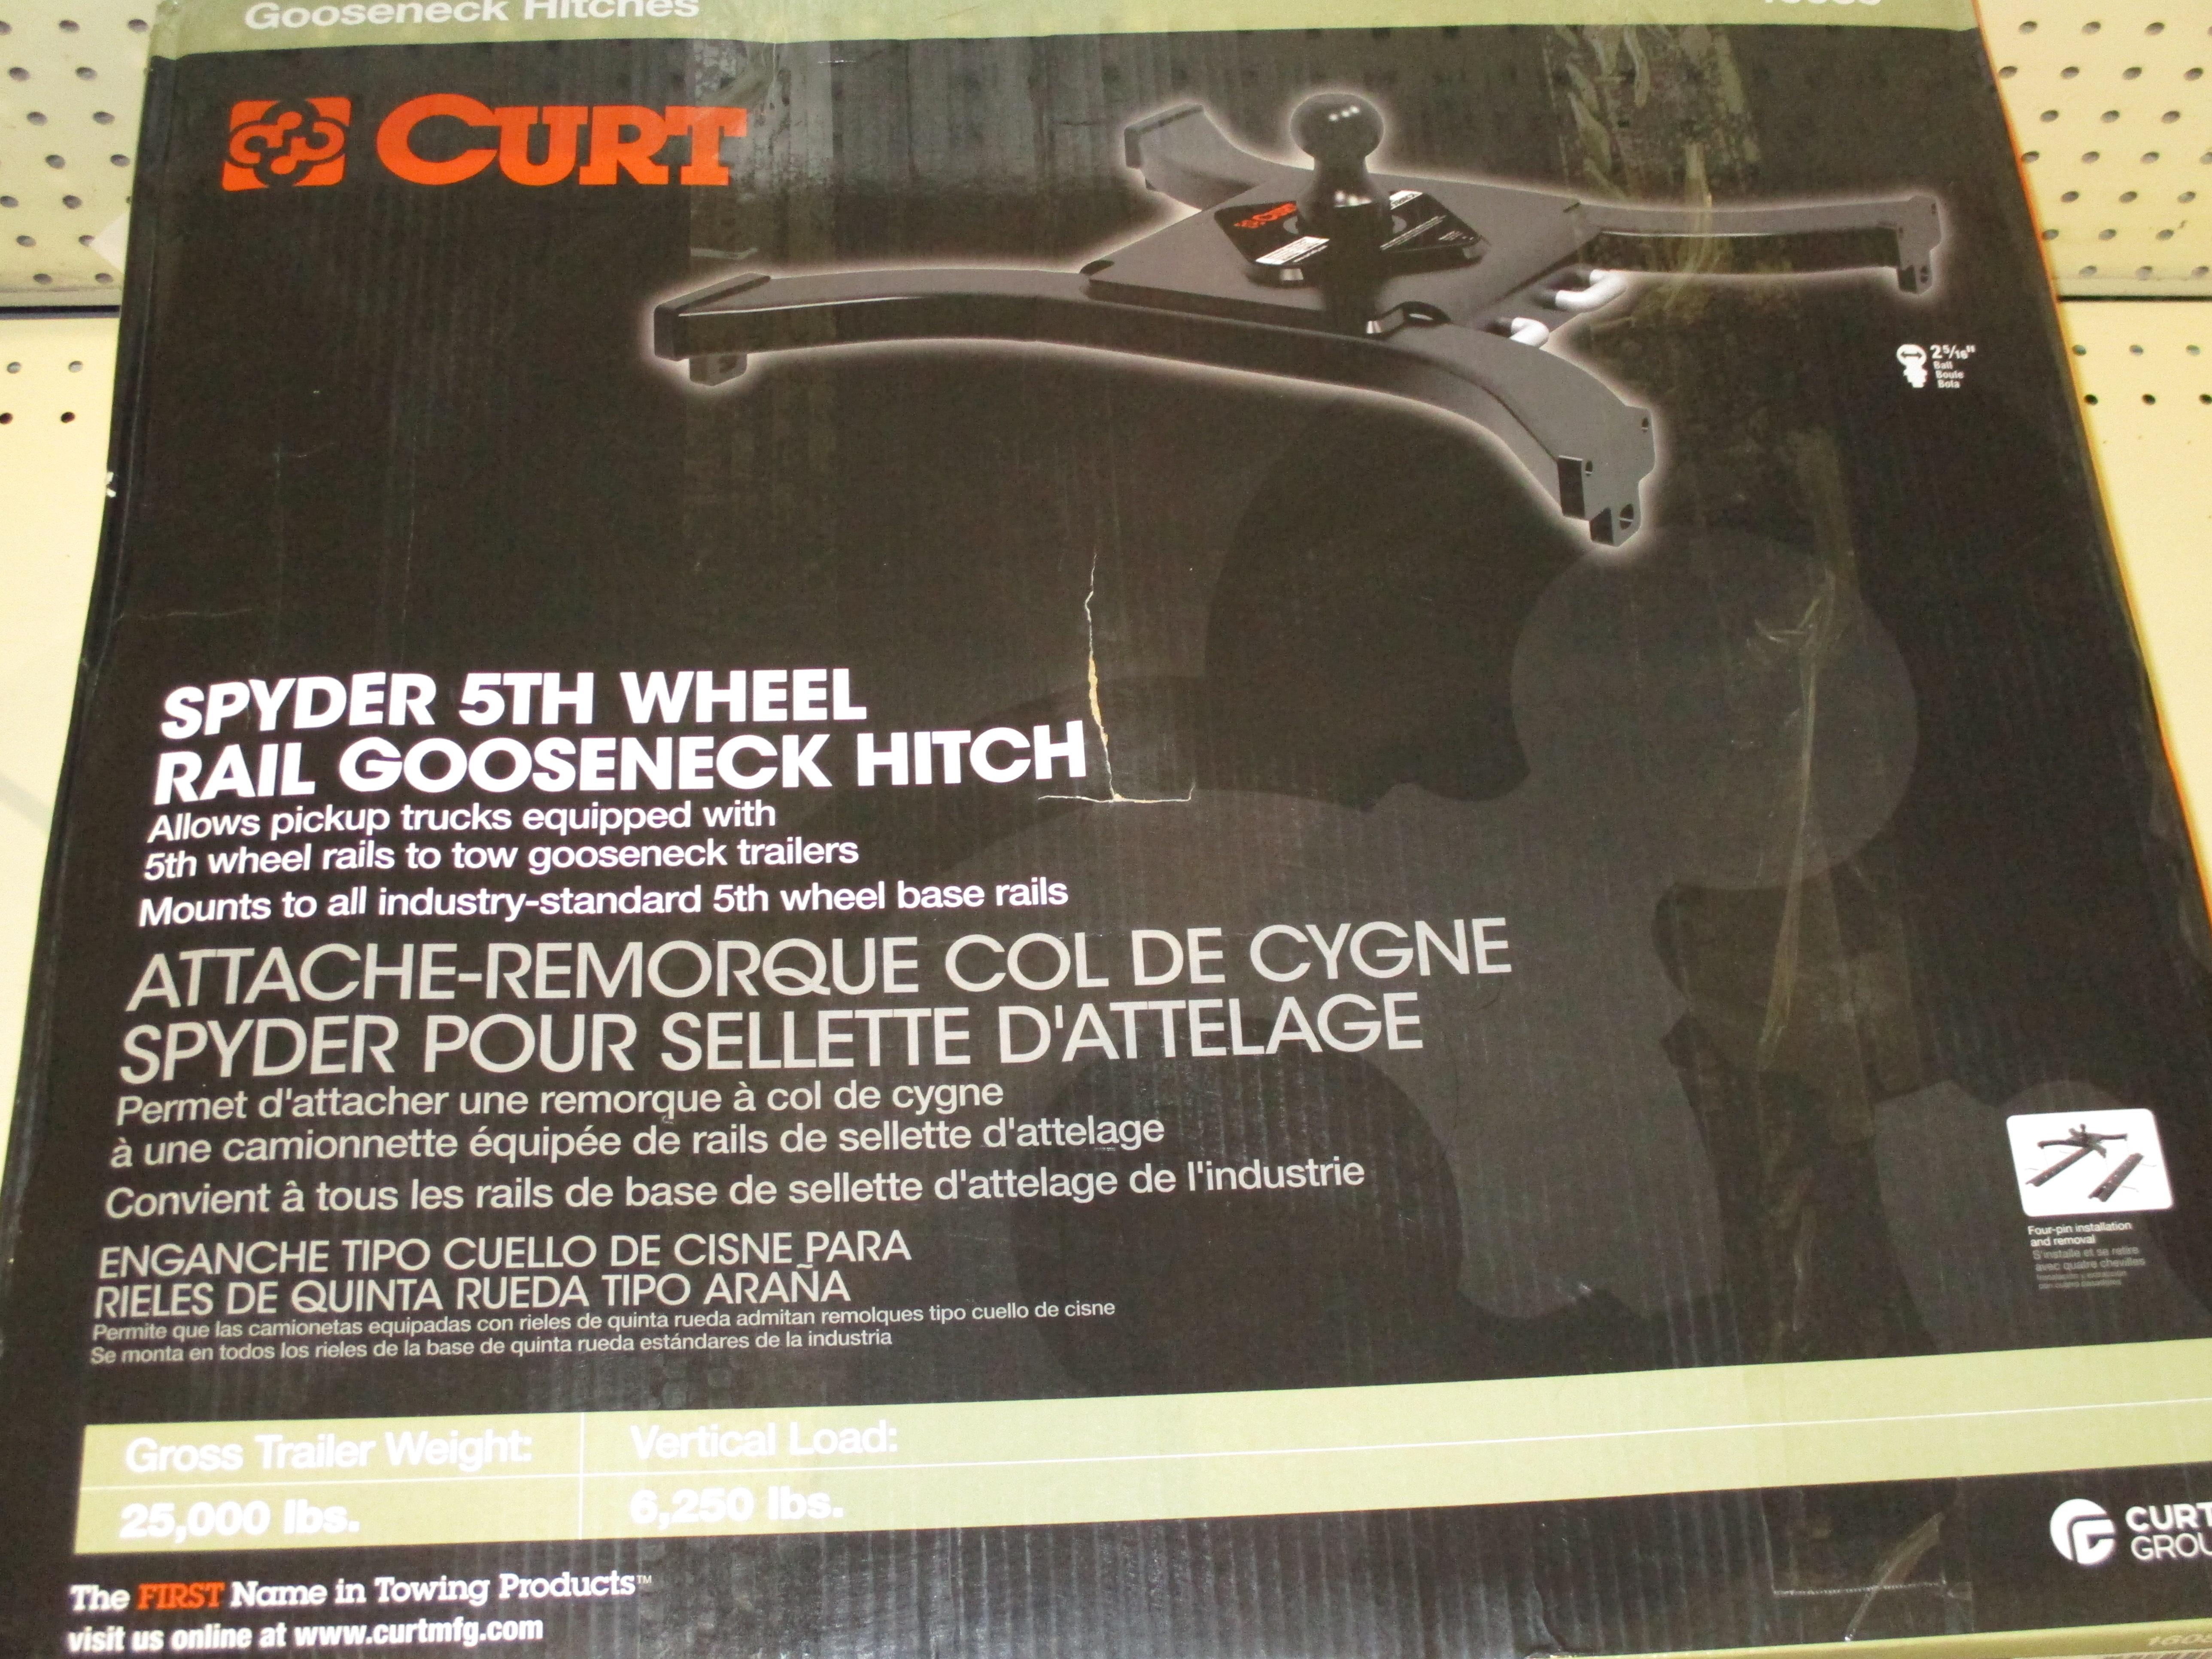 Curt Spyder 5th Wheel Rail Gooseneck Hitch